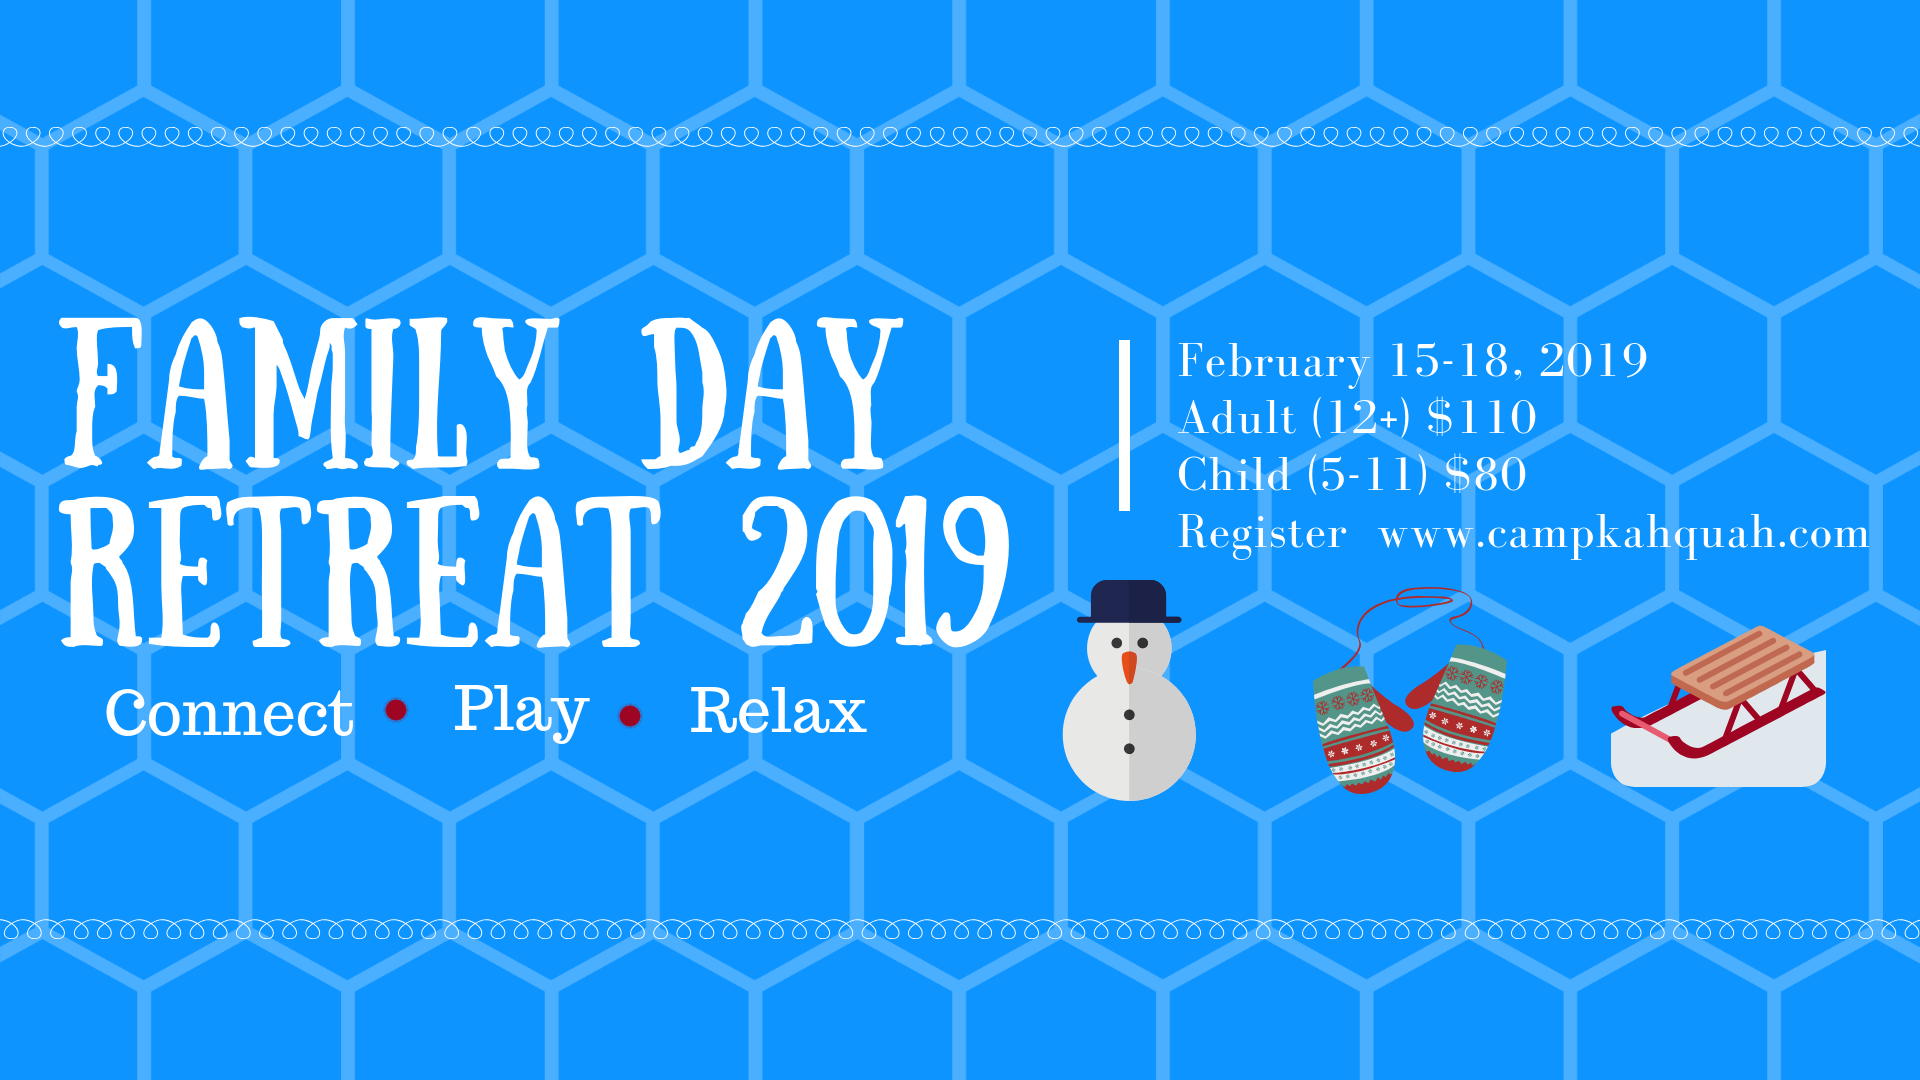 FamilyDayRetreat2019.png